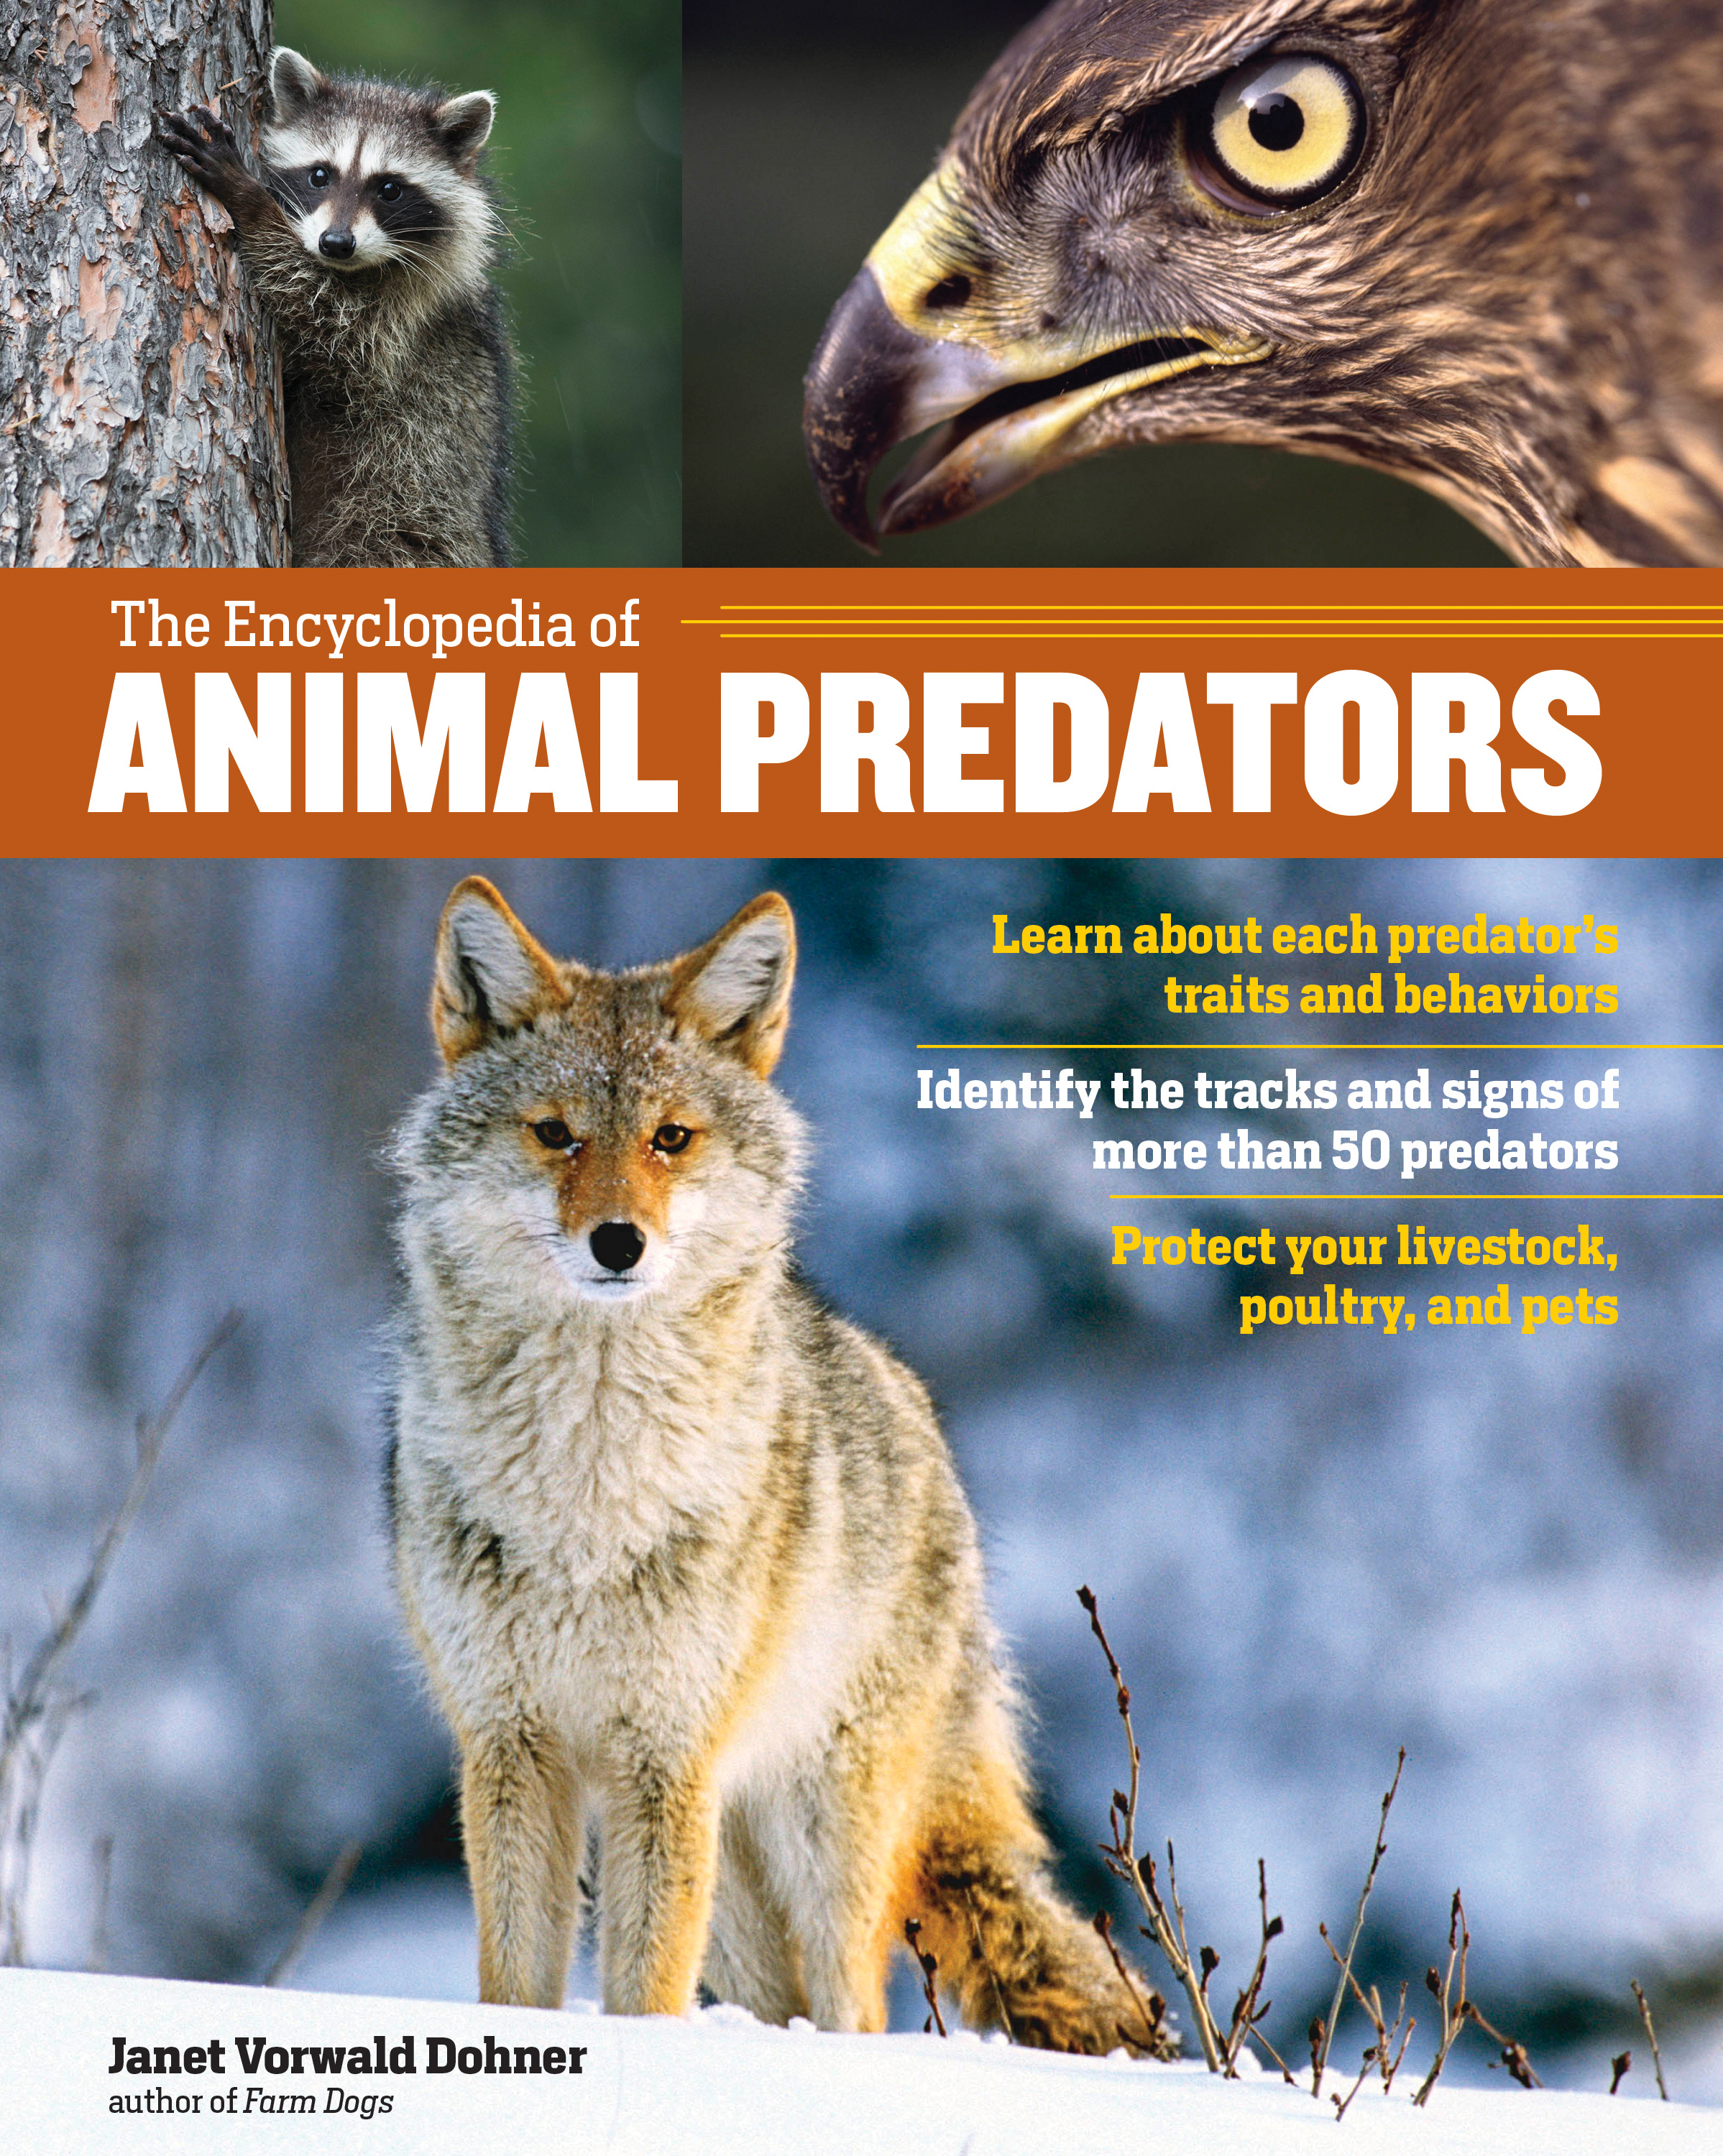 The Encyclopedia of Animal Predators Learn about Each Predator's Traits and Behaviors; Identify the Tracks and Signs of More Than 50 Predators; Protect Your Livestock, Poultry, and Pets - Janet Vorwald Dohner